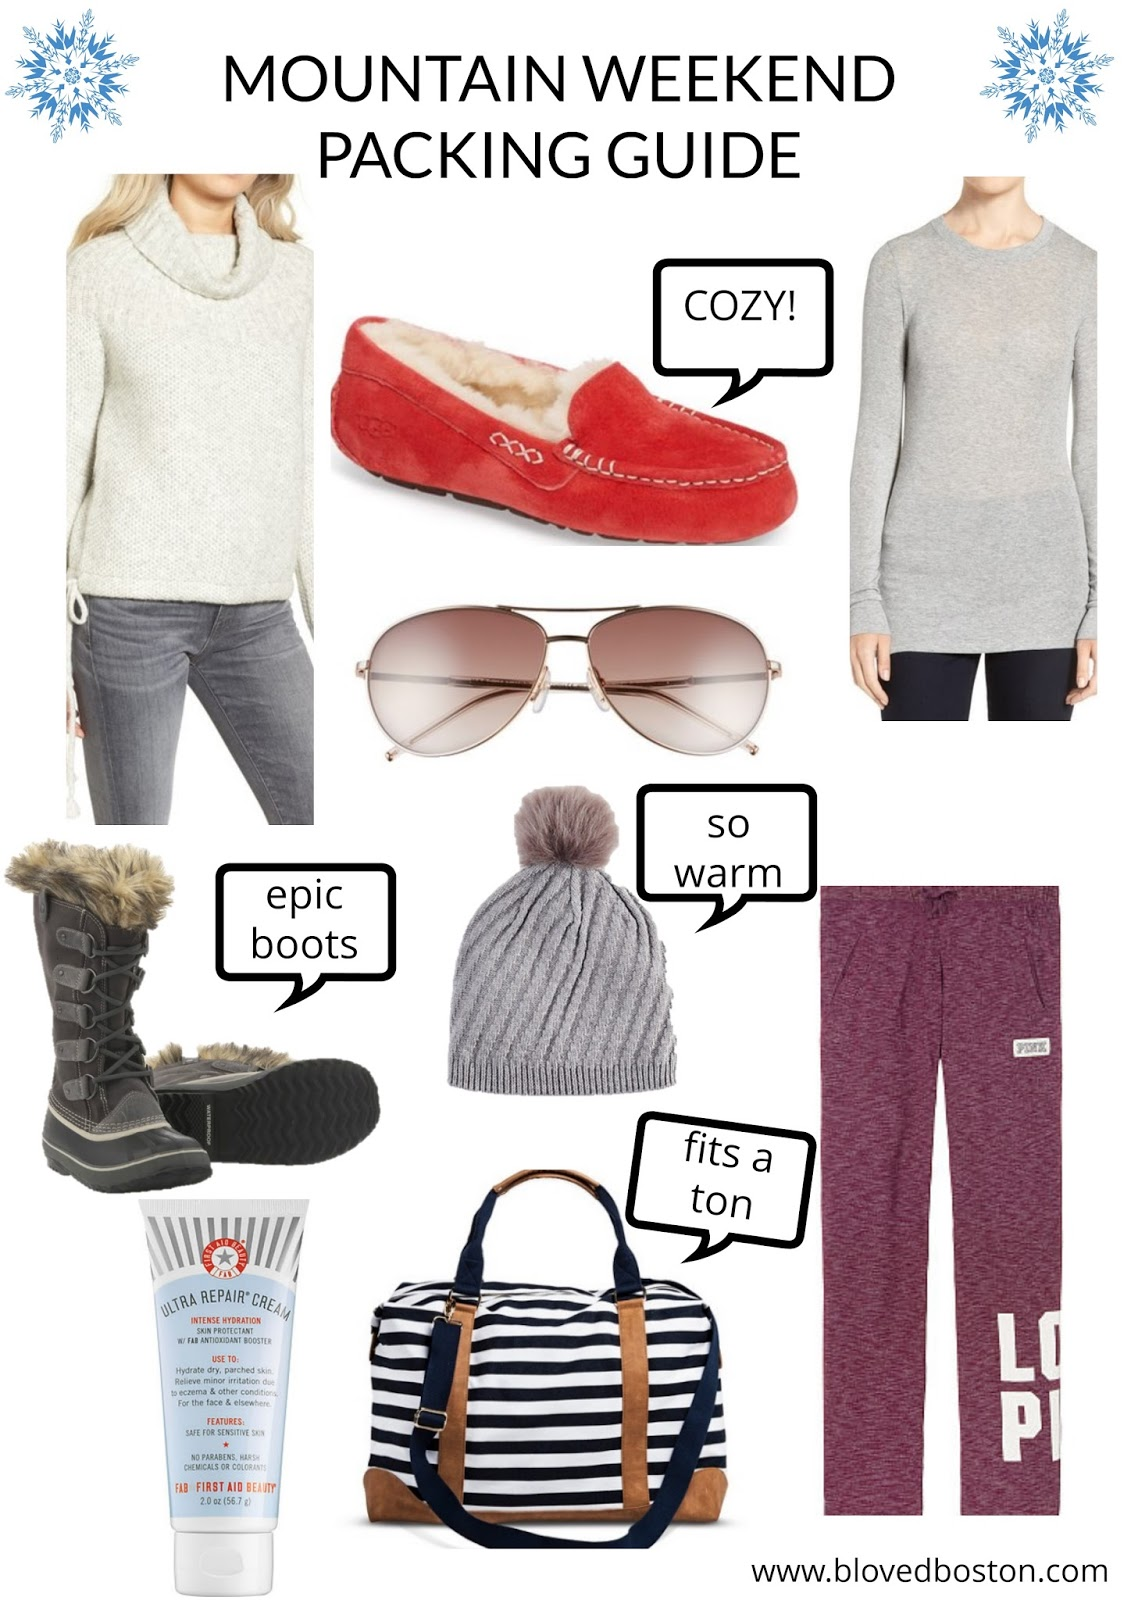 packing guide, ski weekend packing list